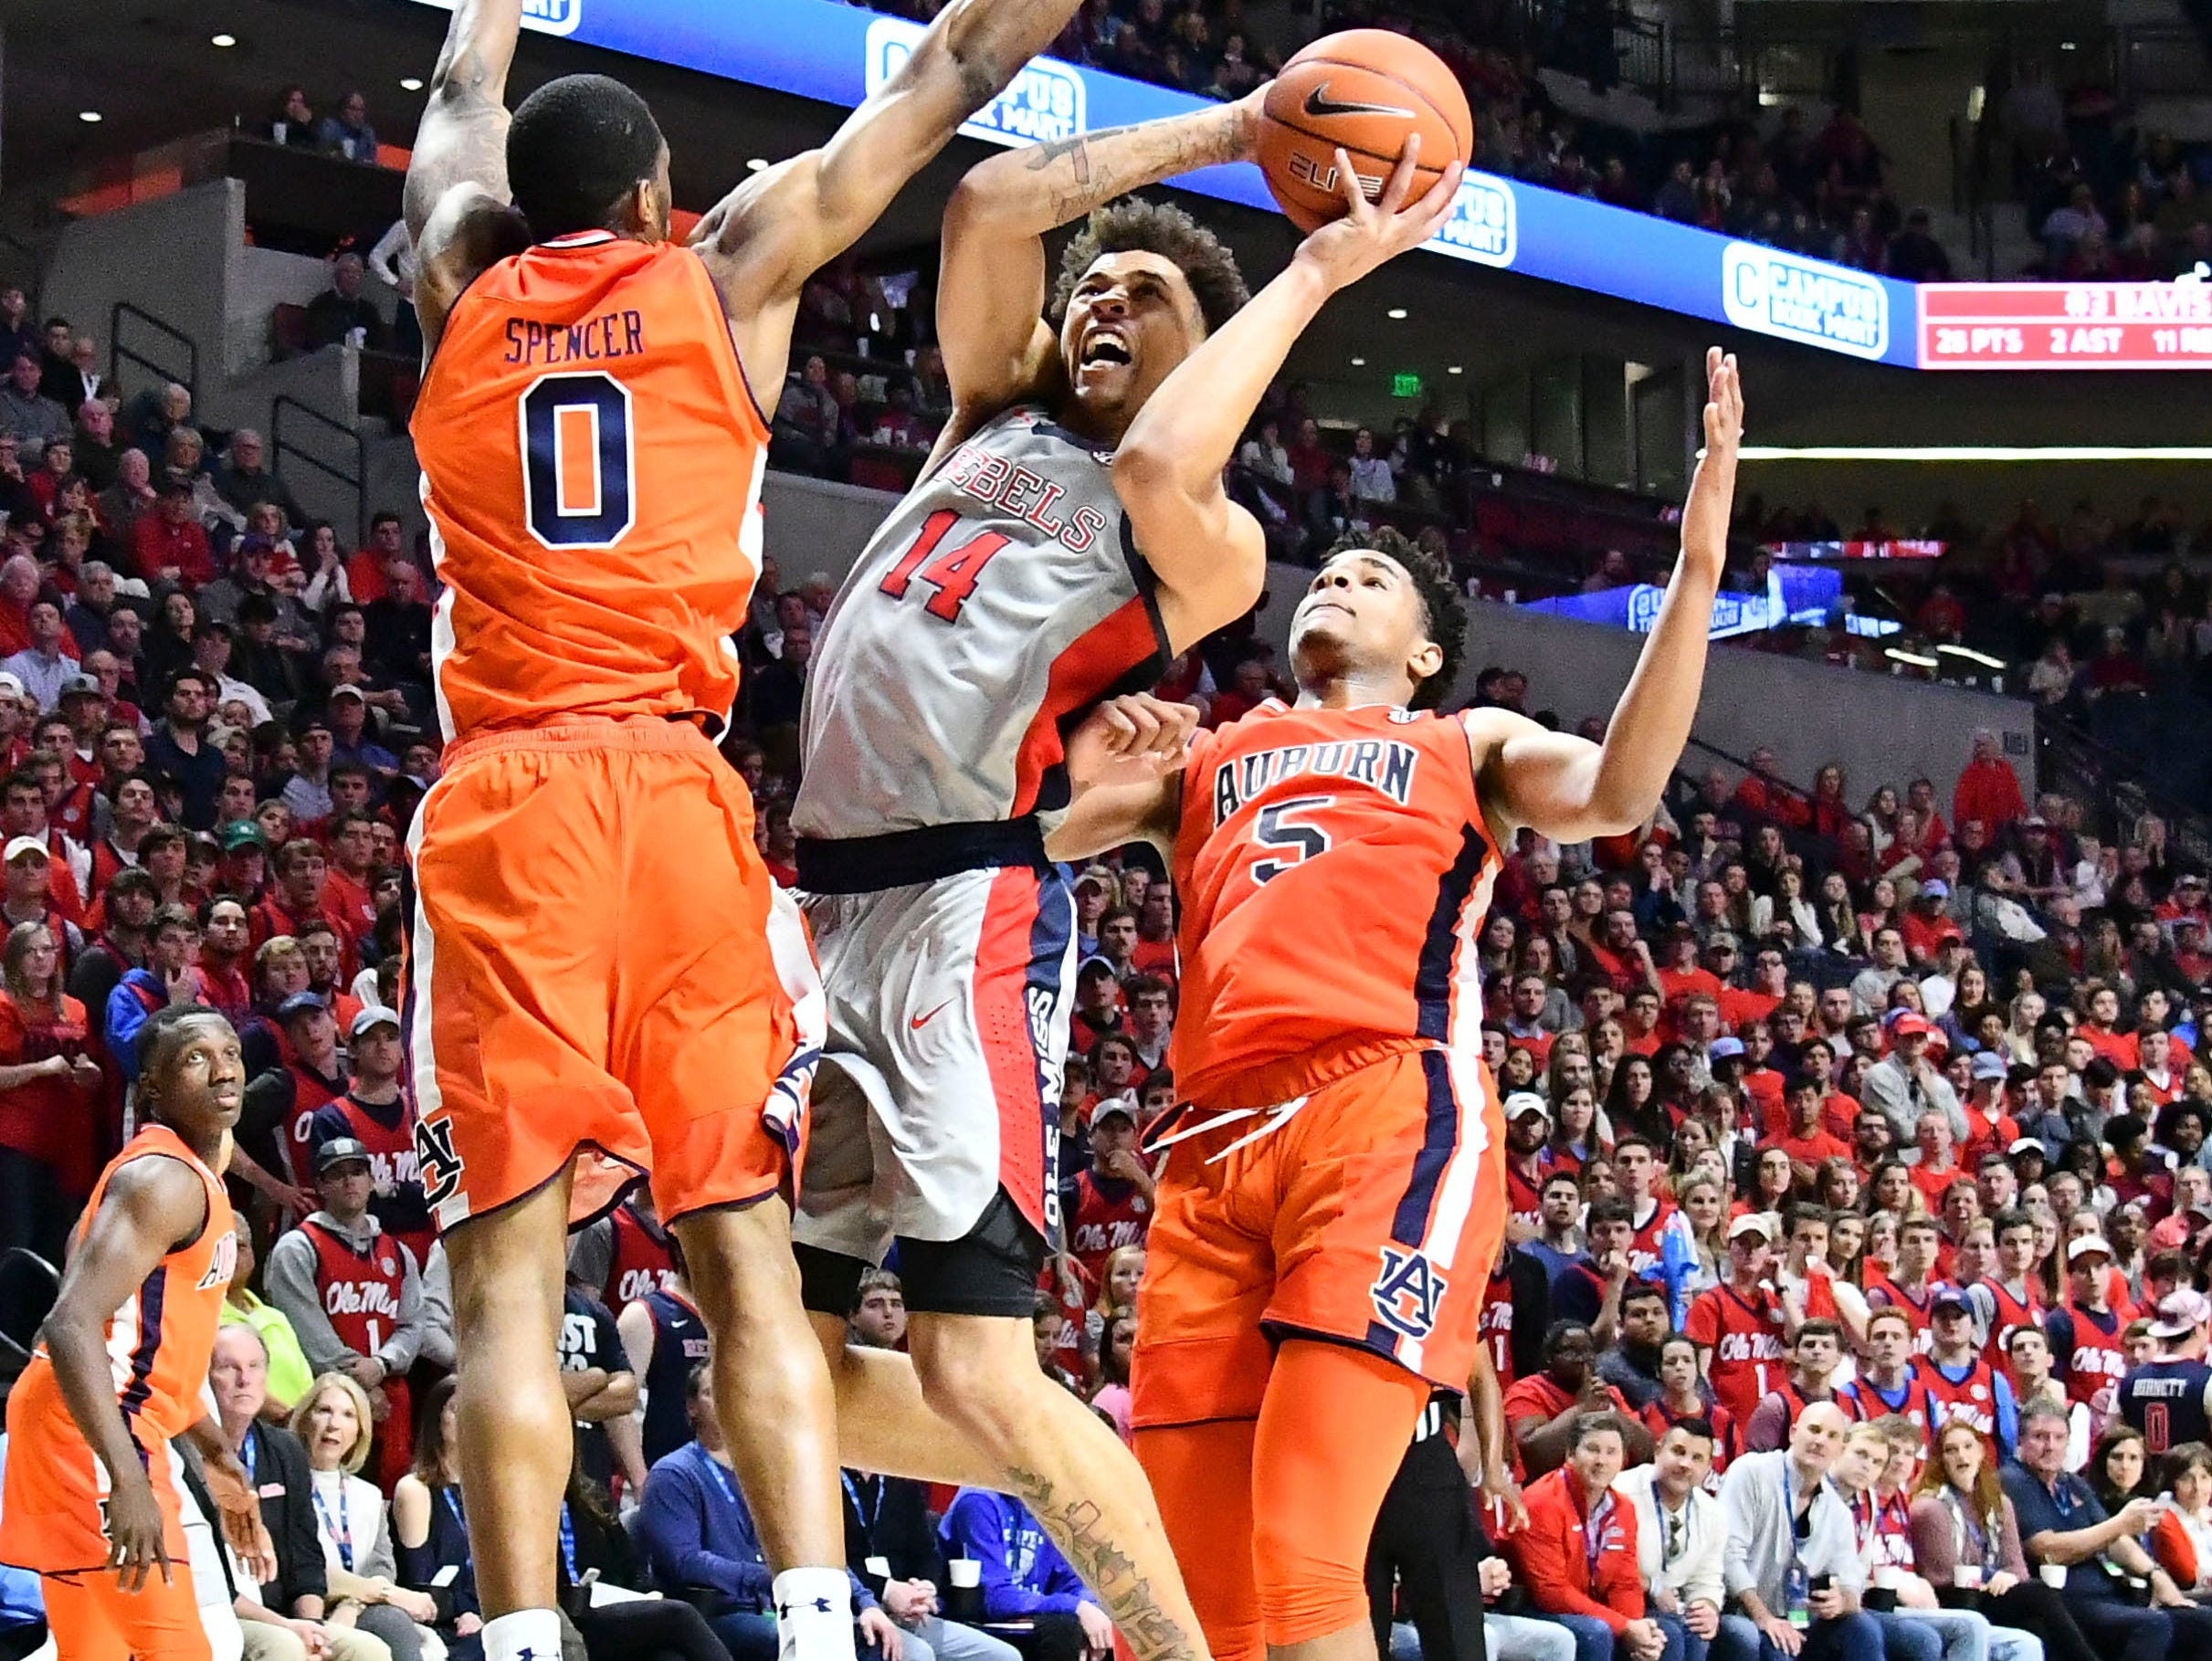 Jan 9, 2019; Oxford, MS, USA; Mississippi Rebels forward KJ Buffen (14) goes up for a shot defended by Auburn Tigers forward Horace Spencer (0) and forward Chuma Okeke (5) during the second half at The Pavilion at Ole Miss. Mandatory Credit: Matt Bush-USA TODAY Sports